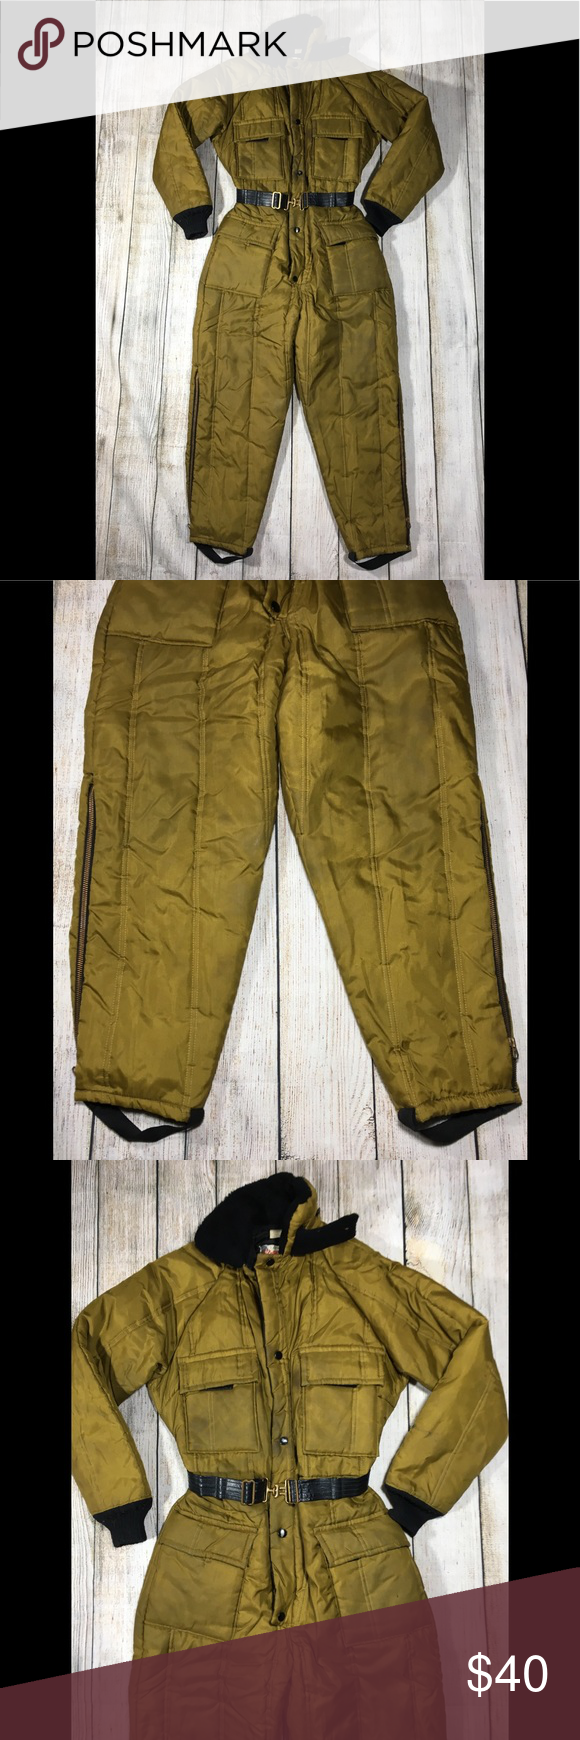 vtg walls blizzard pruf insulated snowsuit y m 14 vtg on walls insulated coveralls for women id=85149